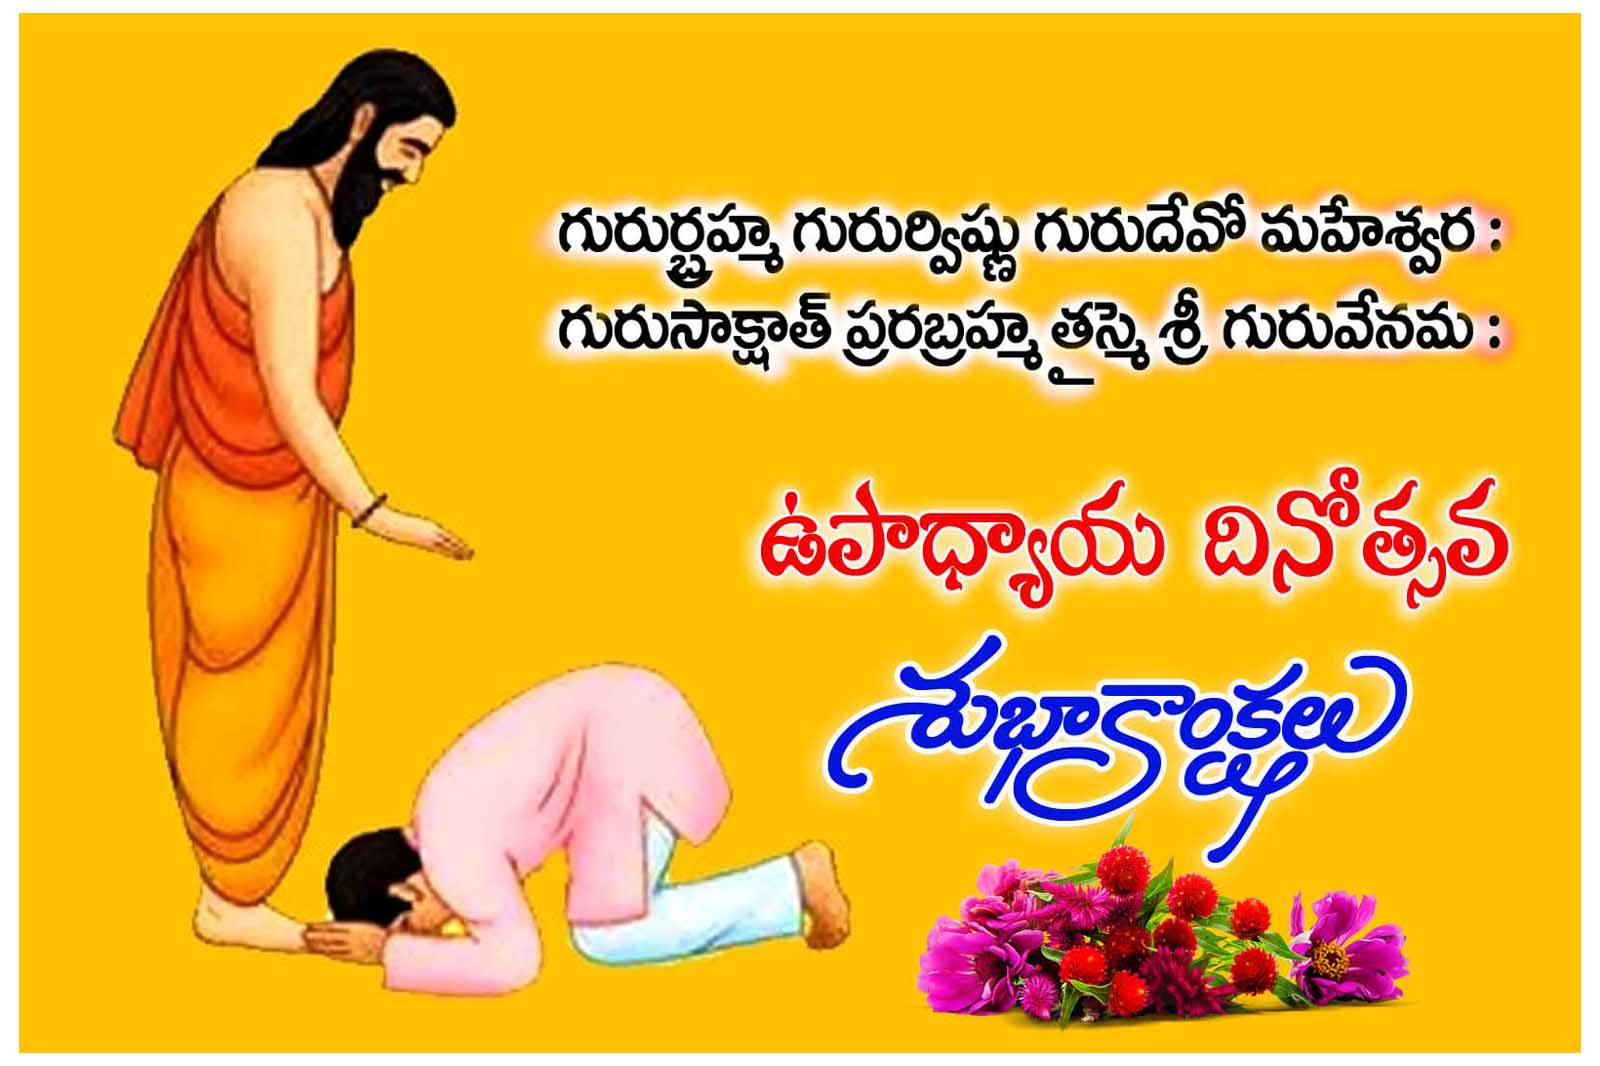 Teachers Day Greetings Quotes In Telugu Latest Teachers Day Quotes